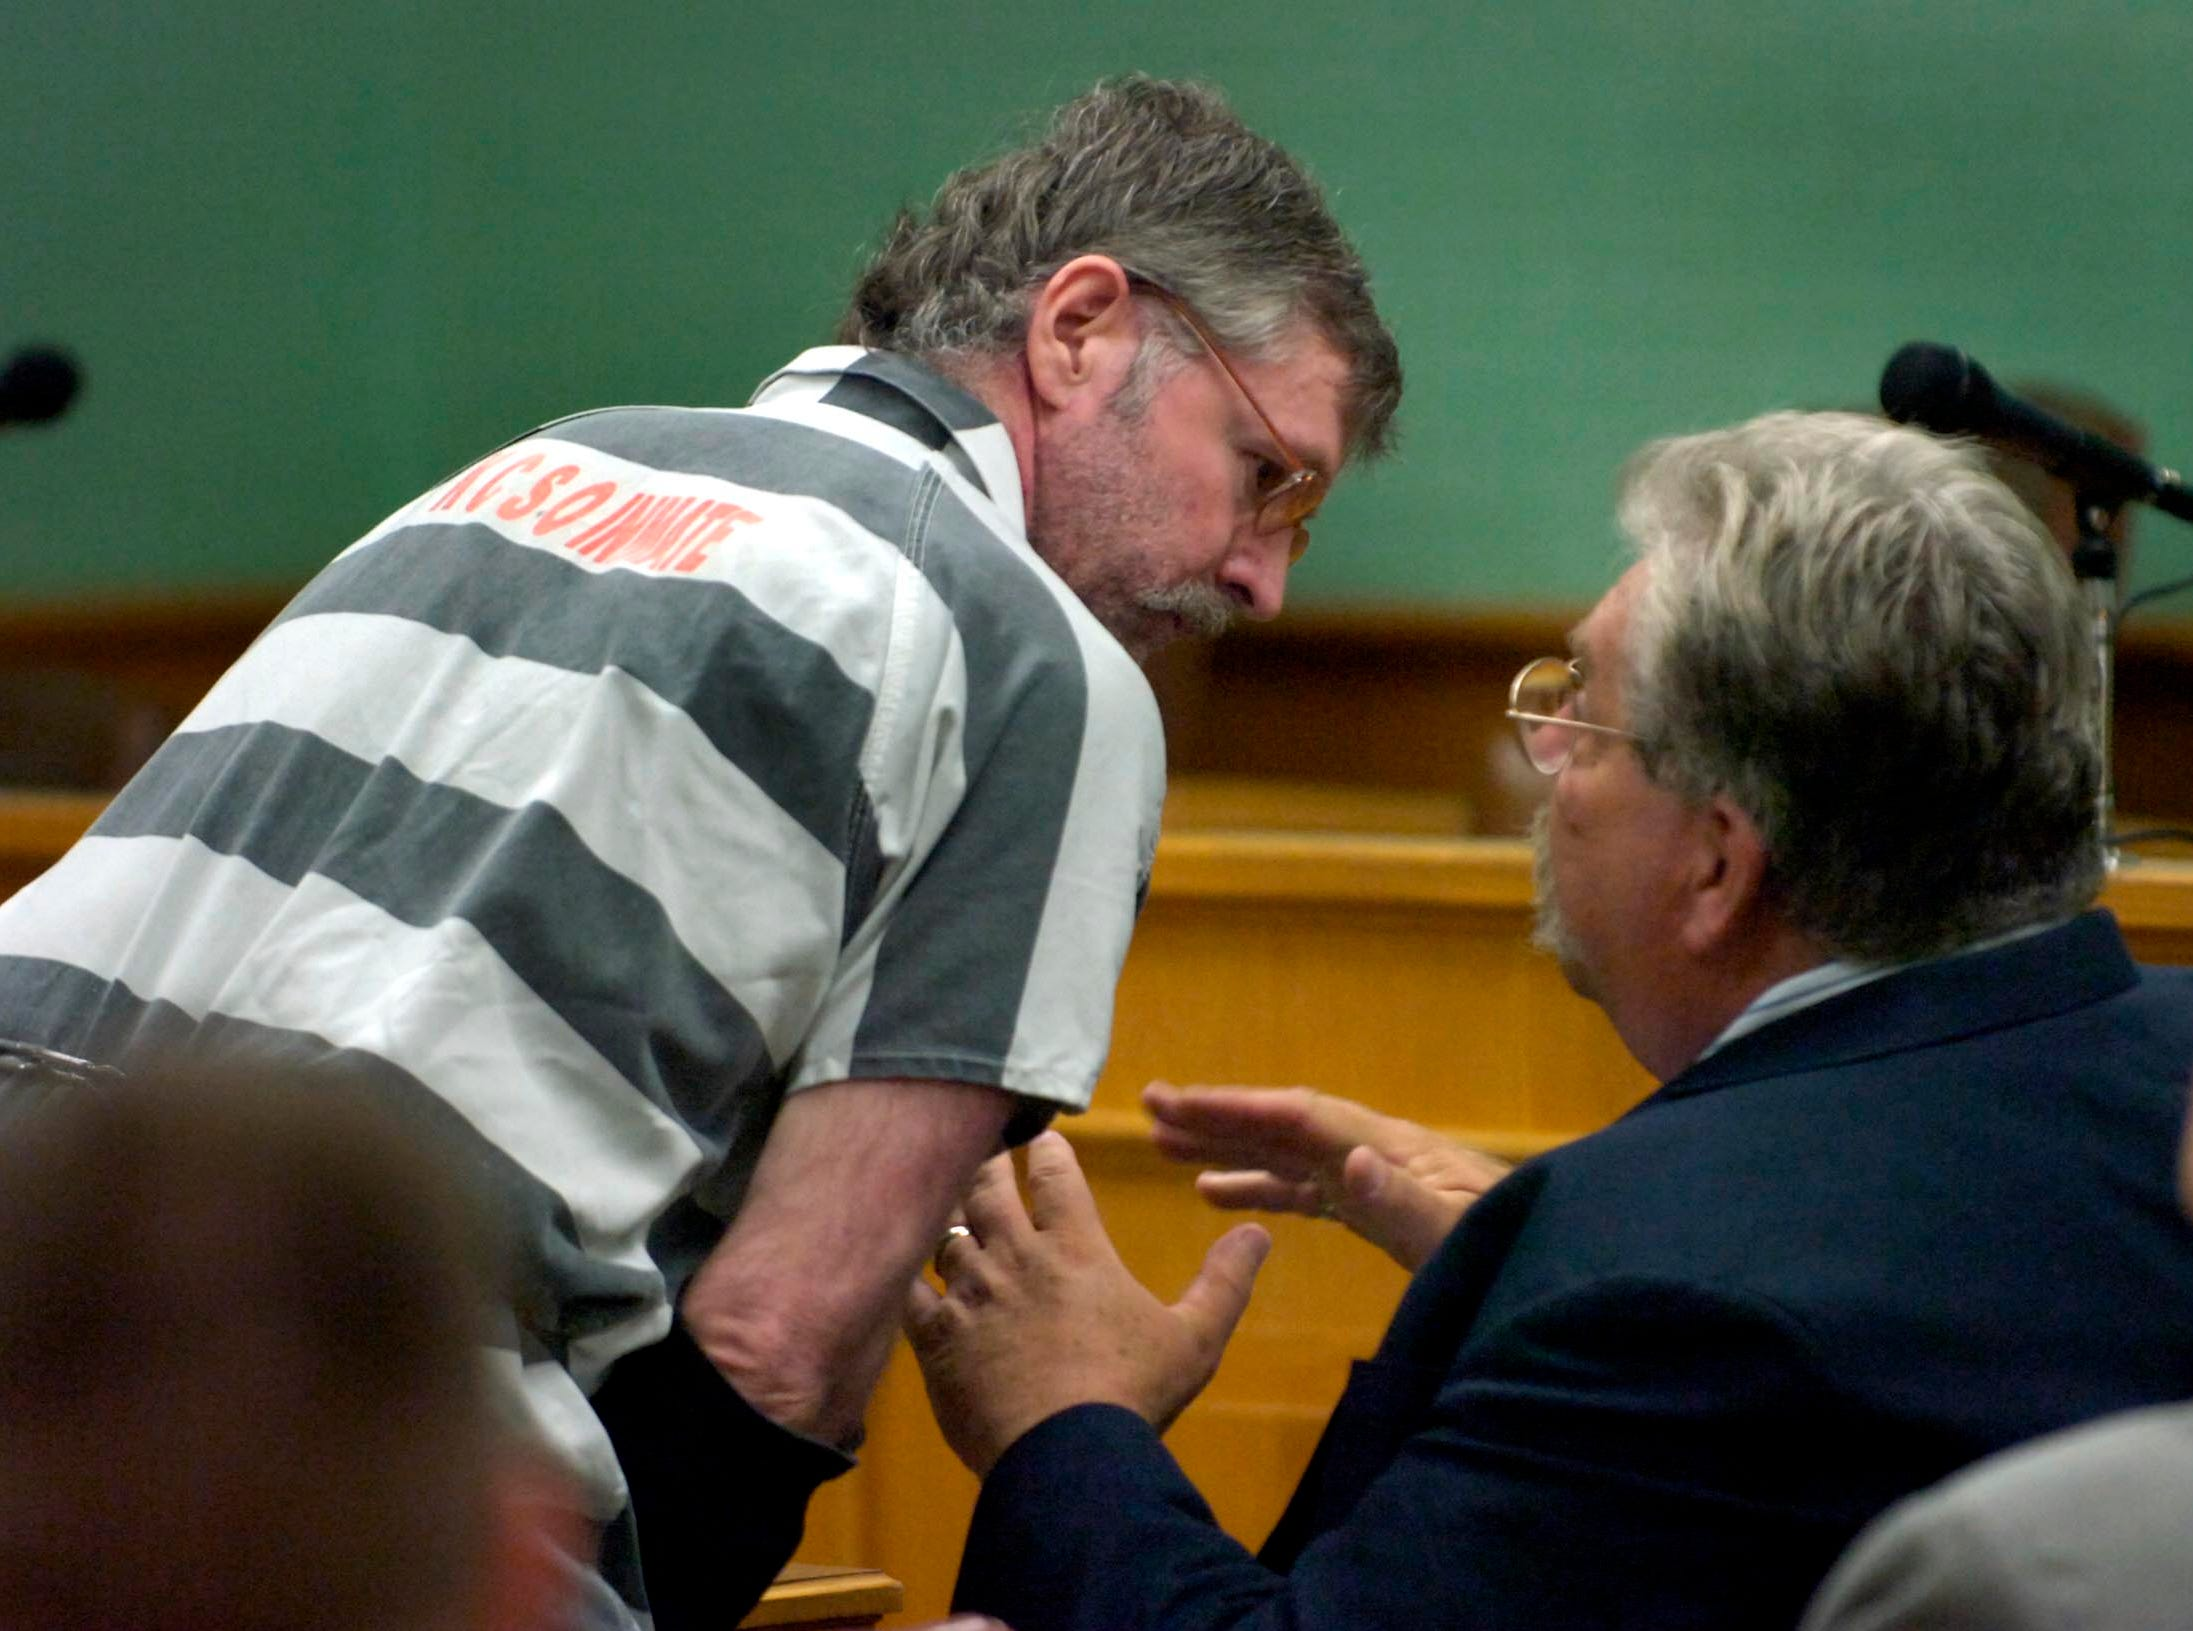 houstons4.MP#8187      MICHAEL PATRICK/NEWS SENTINEL     Rocky Houston talks to his attorney Randy Rogers (right) during a preliminary hearing Thursday morning in Roane County Sessions Court in the deaths of two men on May 11, 2006.